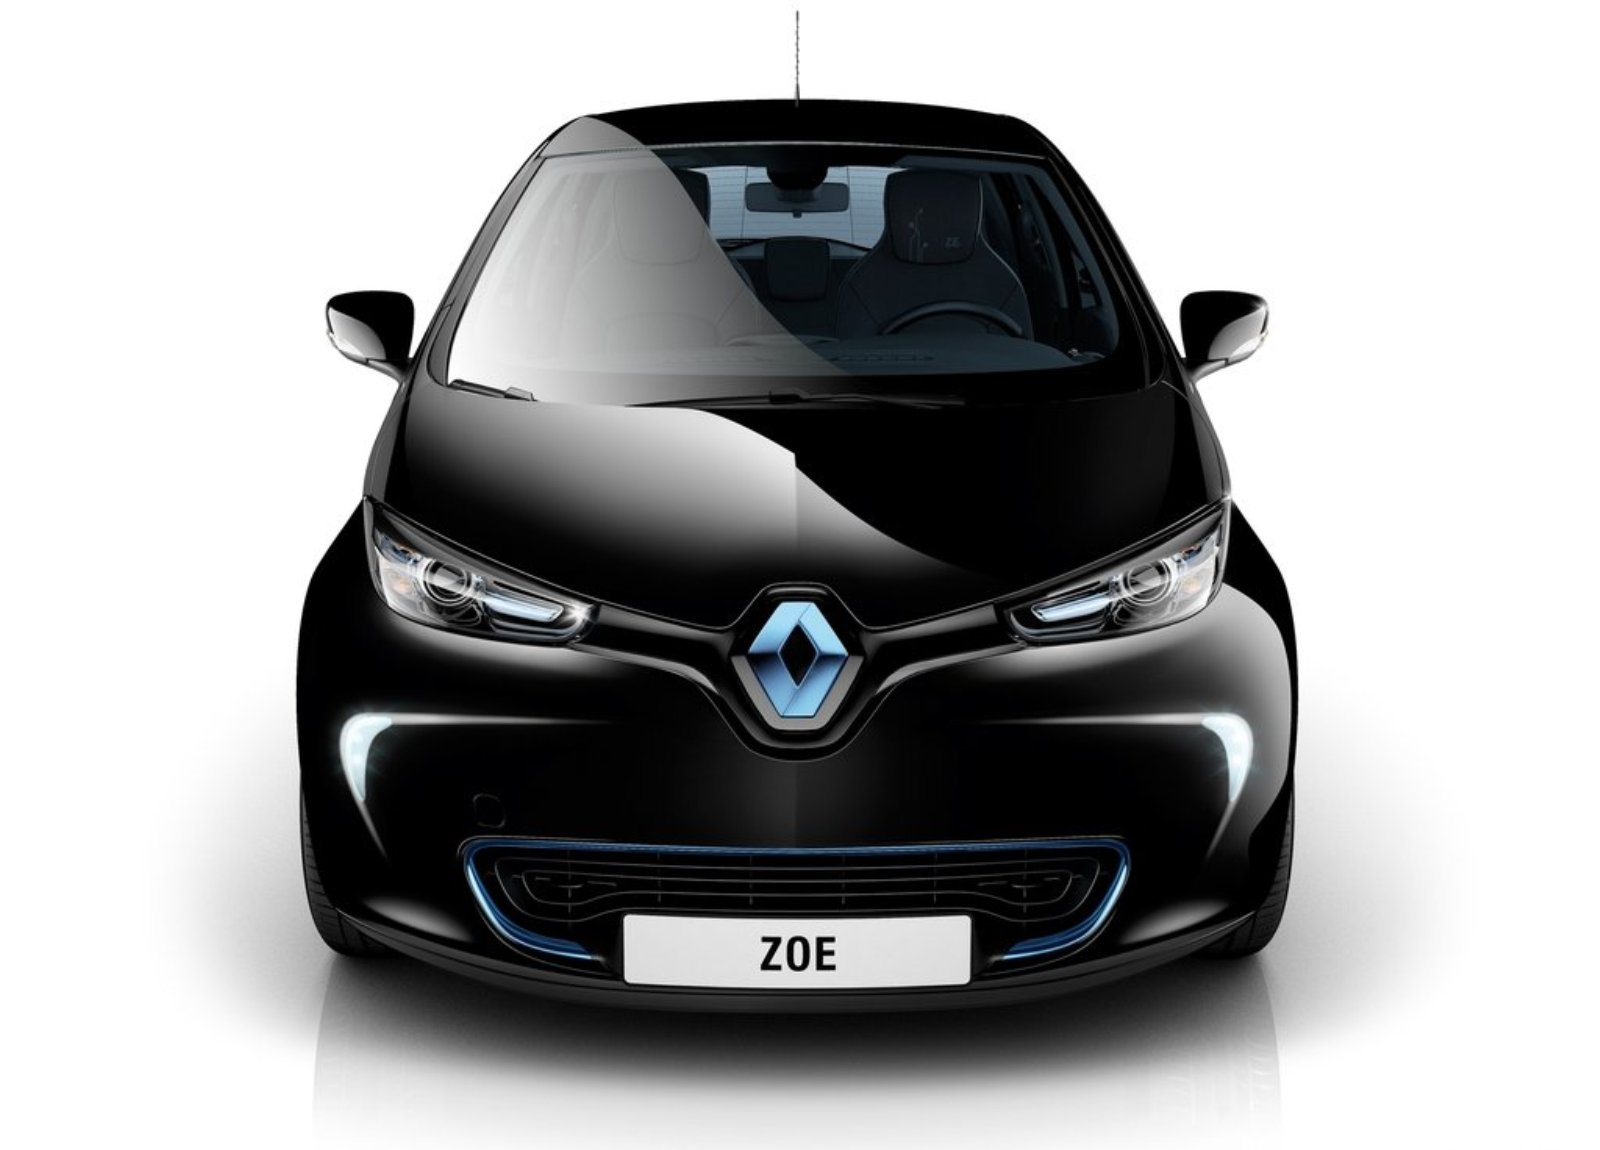 car wallpaper car pictures renault zoe 2013 photos wallpapers pictures. Black Bedroom Furniture Sets. Home Design Ideas